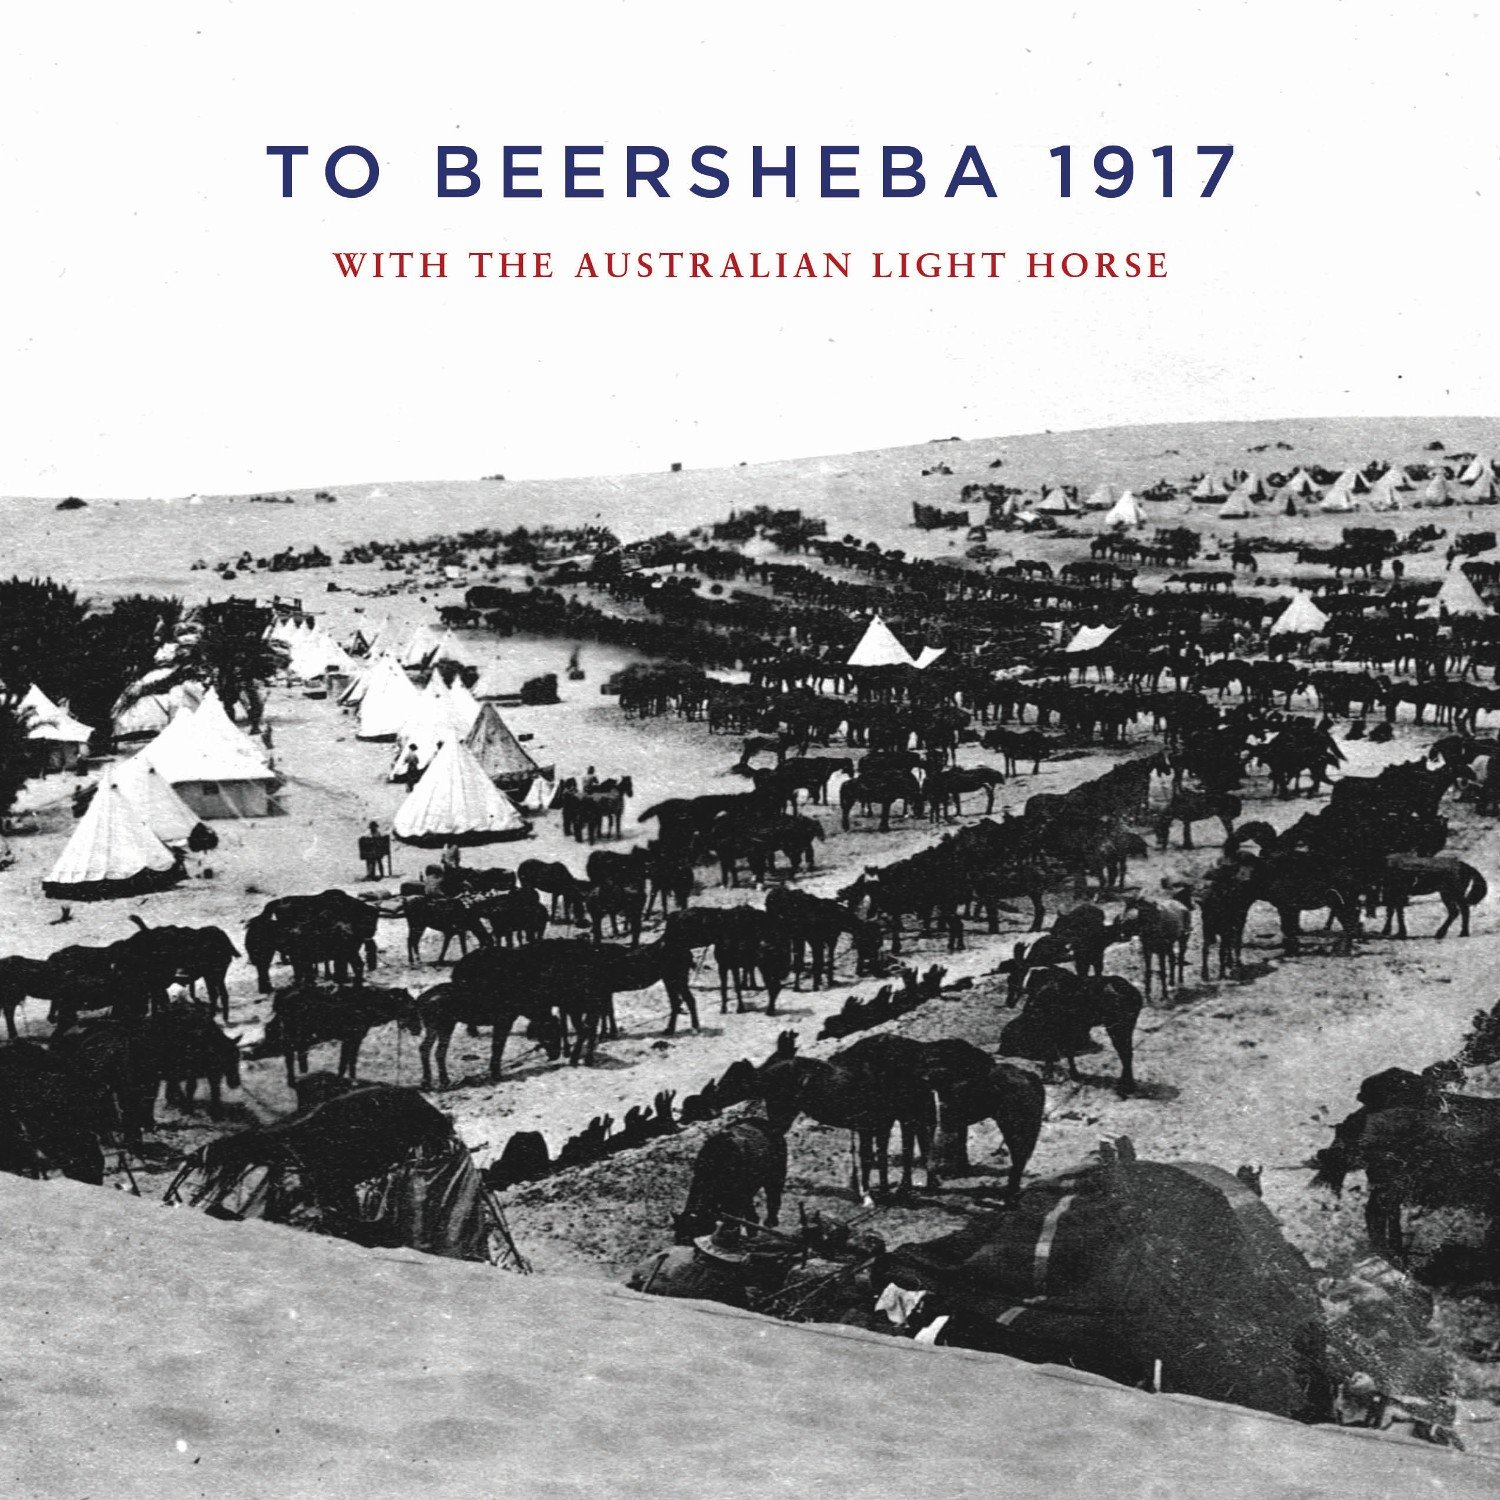 to-beersheba-1917-with-the-australian-light-horse